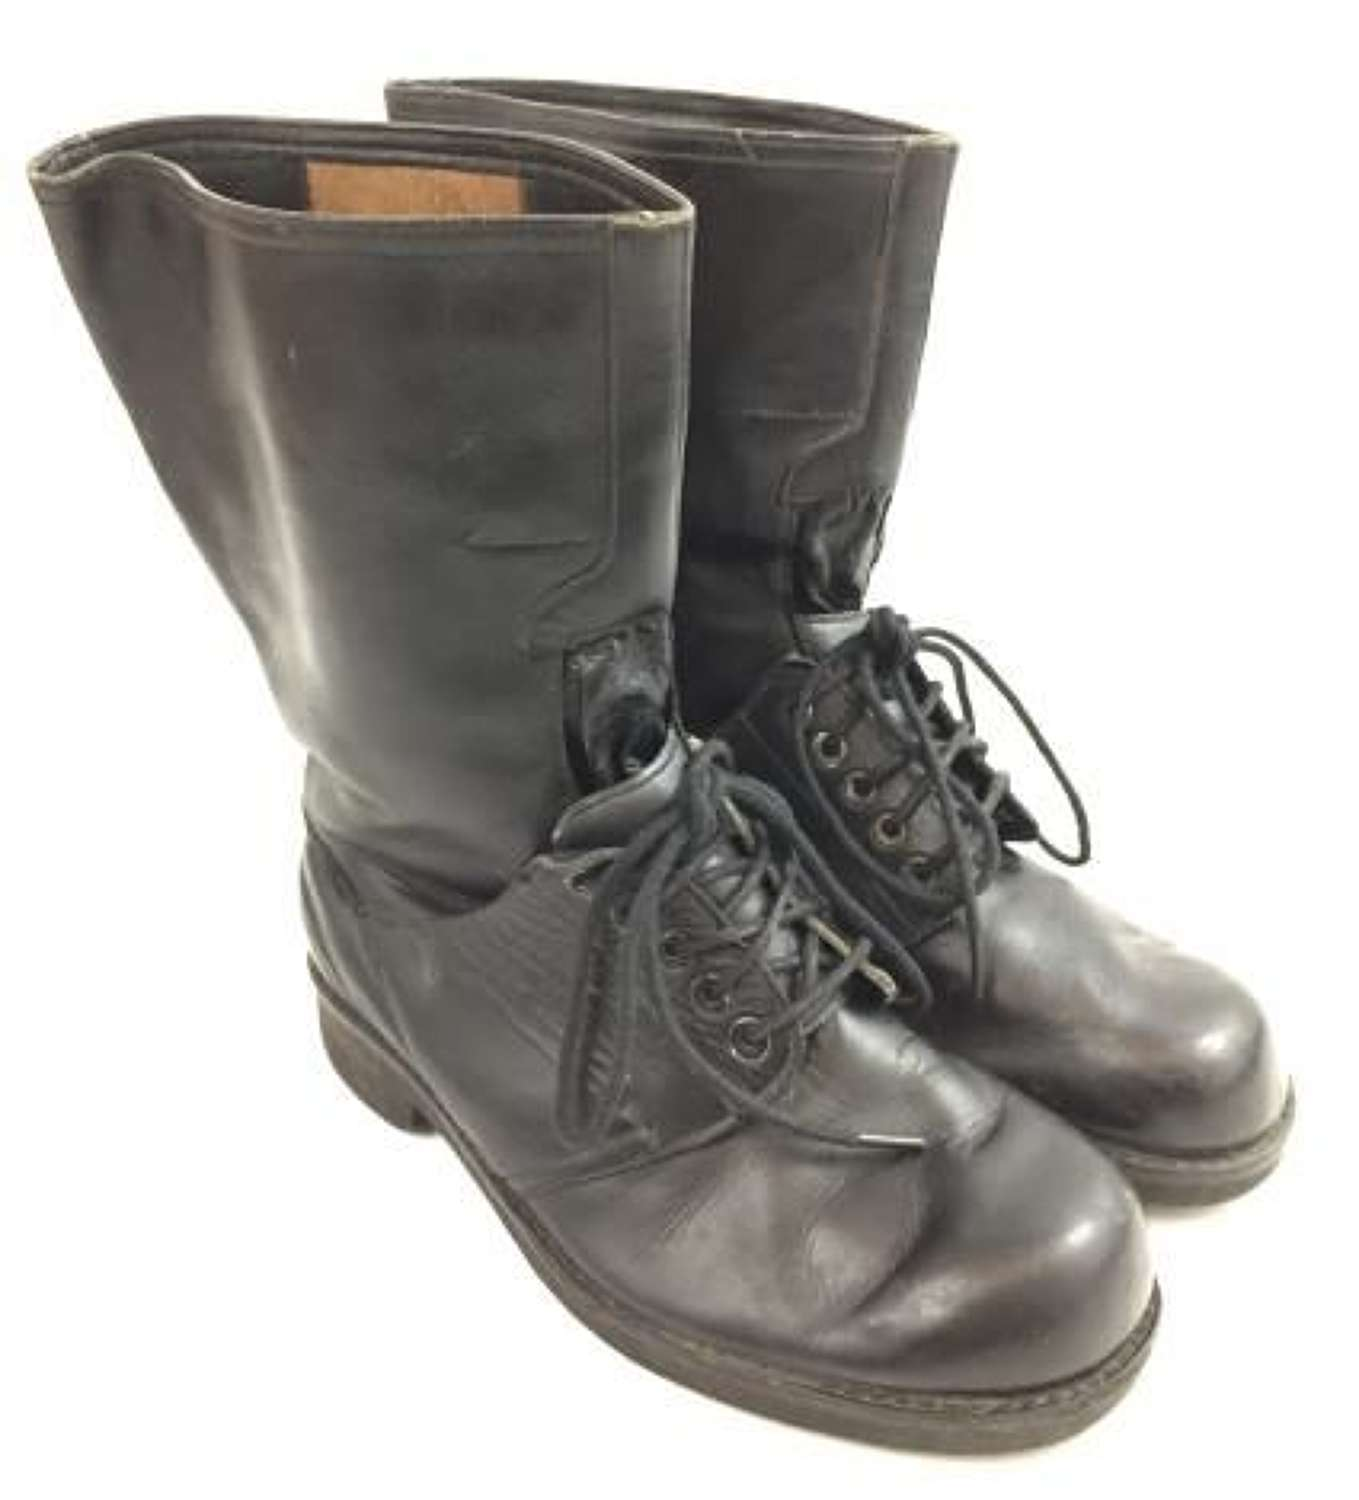 Original RAF 1951 Pattern Flying Boots